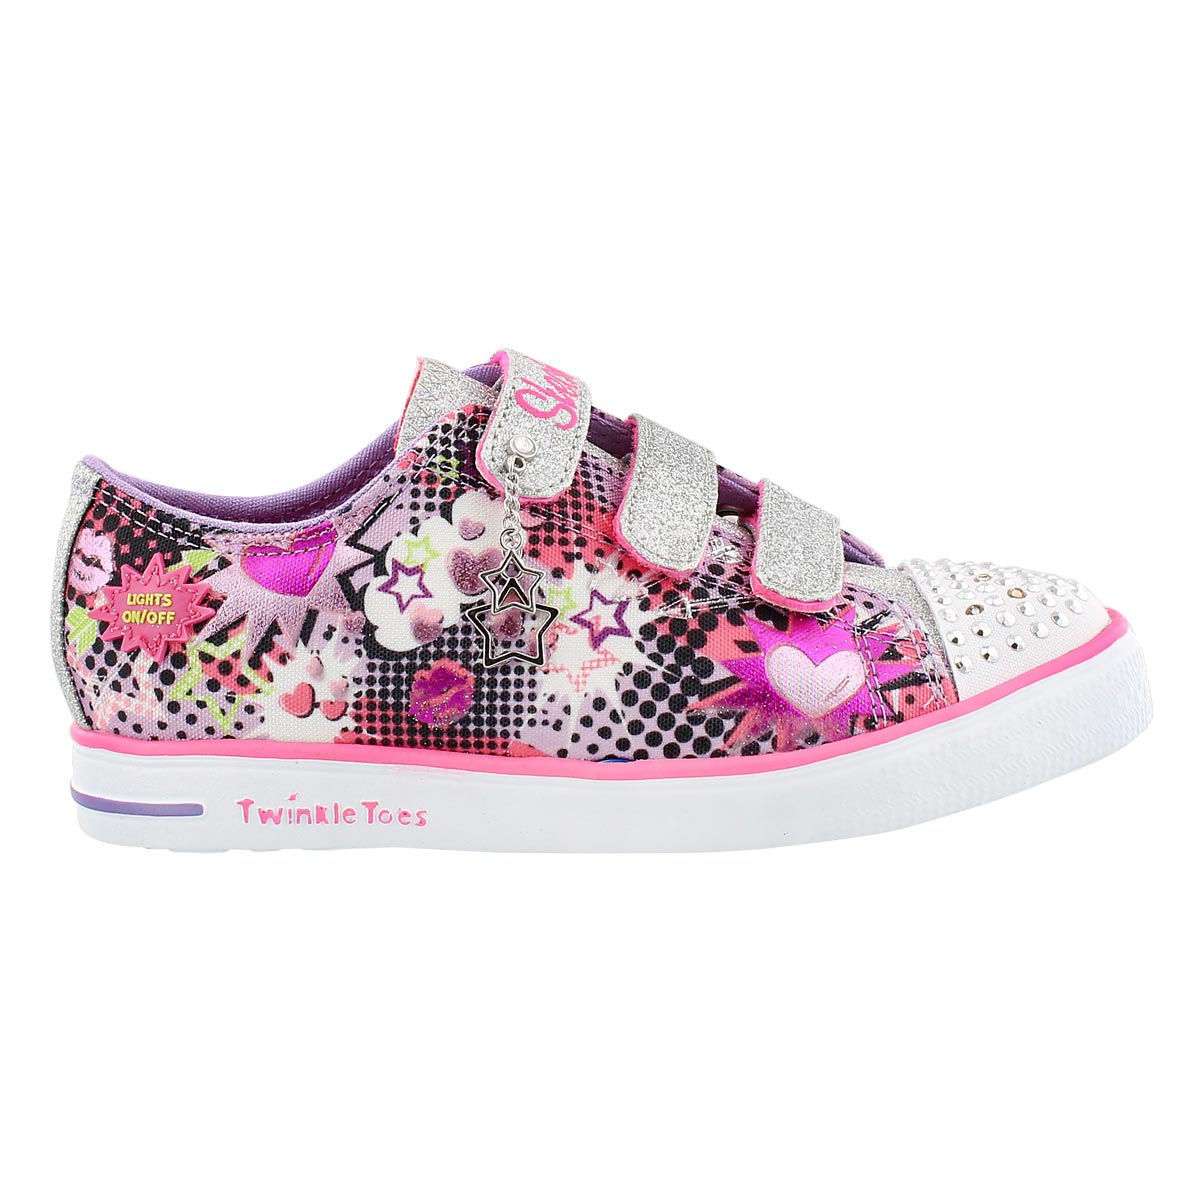 Grls Twinkle Breeze ppl/pk light up snkr